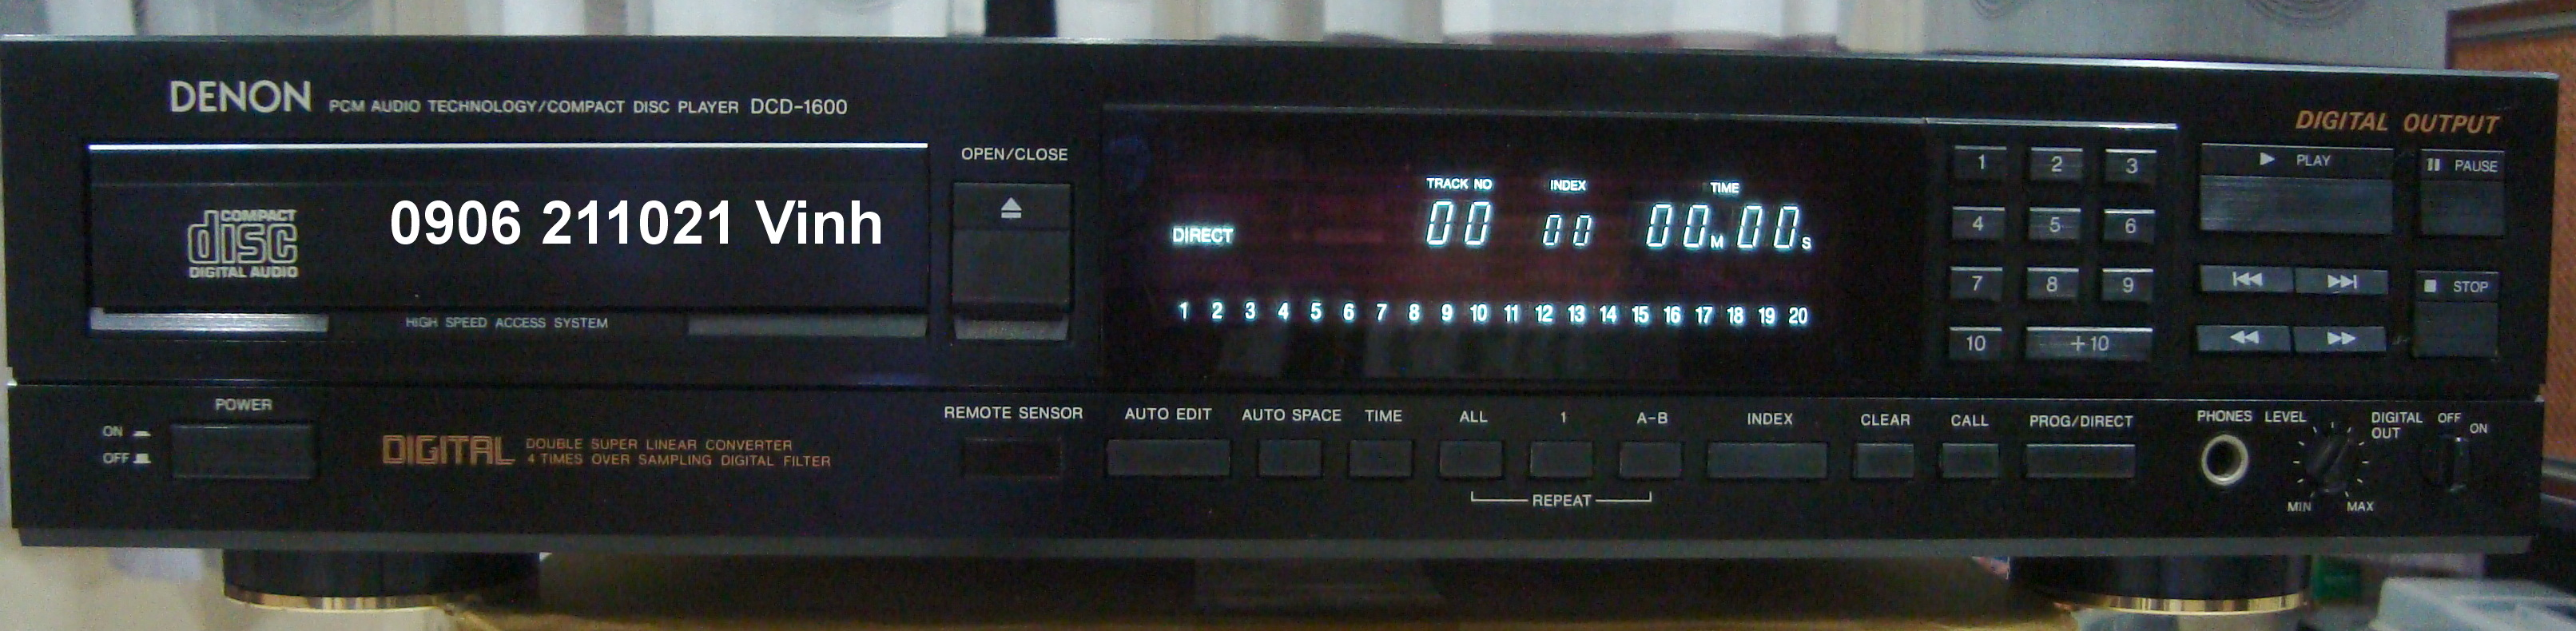 "7 Giao lưu, mua bán CD Player, <a style=""color:inherit !important;font-size:inherit !important;"" href=""http://rongbay.com/Loa-dan-am-thanh-karaoke-Dien-tu-Ky-thuat-so-c279-t355.html"" title=""Amply"">Amply</a> nổi tiếng thế giới"